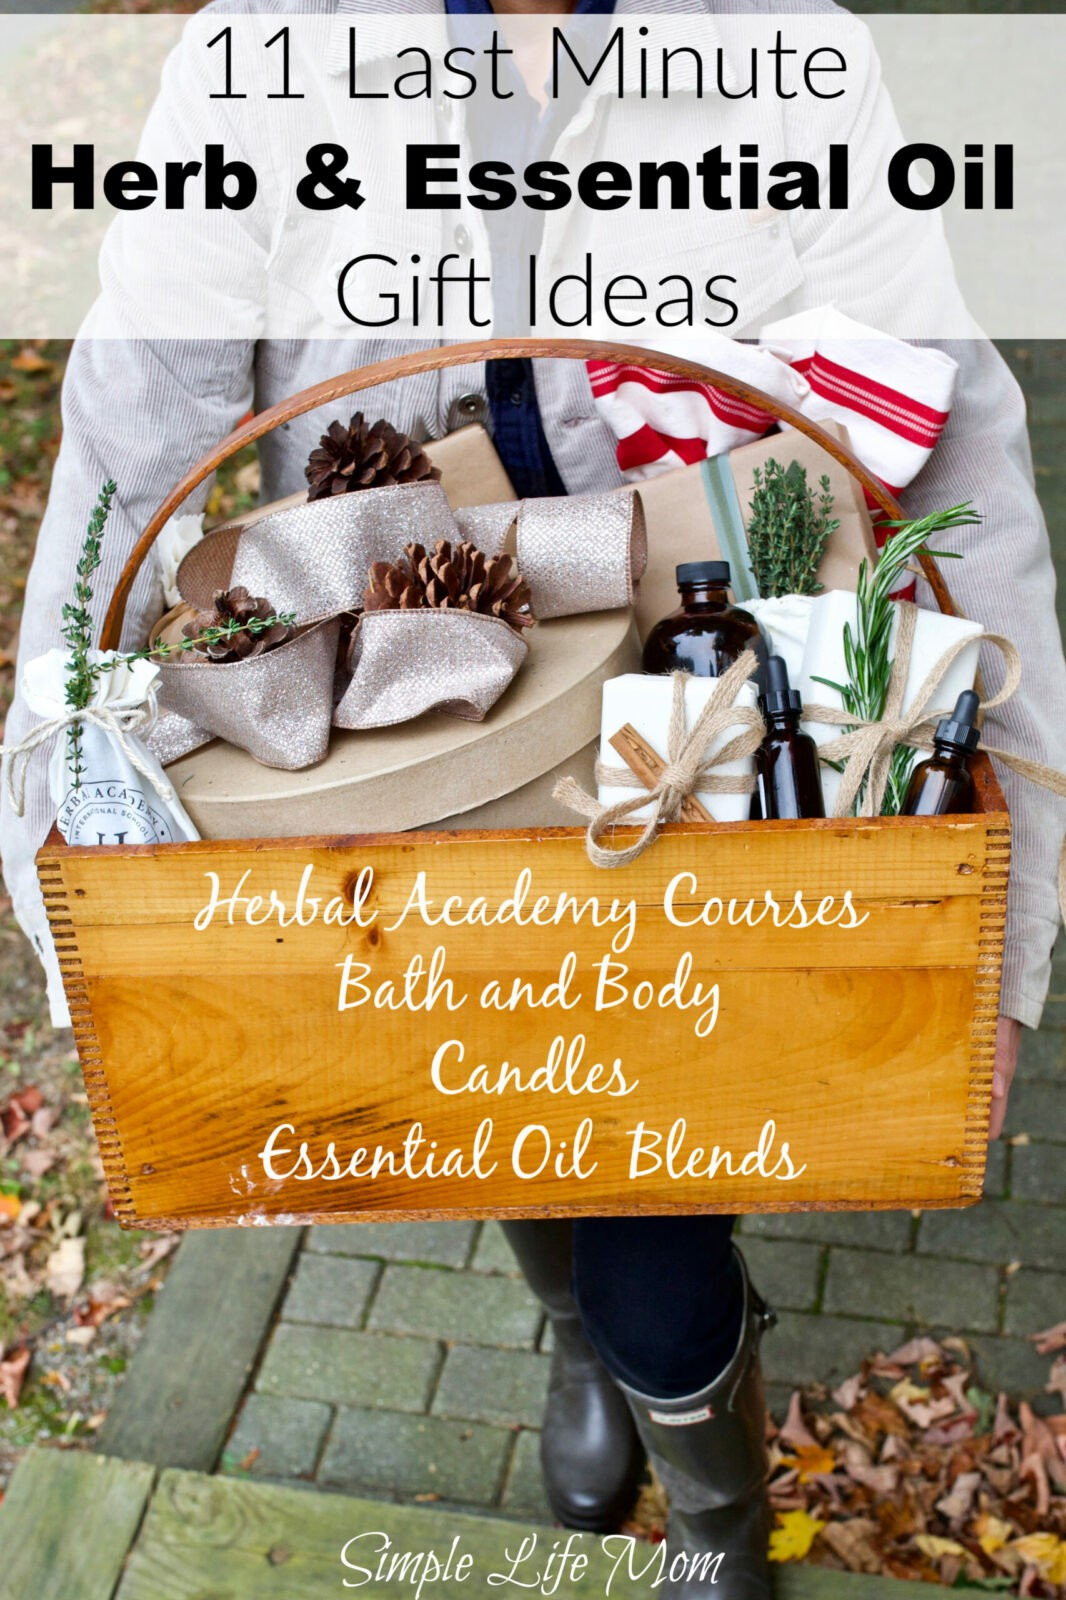 11 Last Minute Herb and Essential Oil Gift Ideas